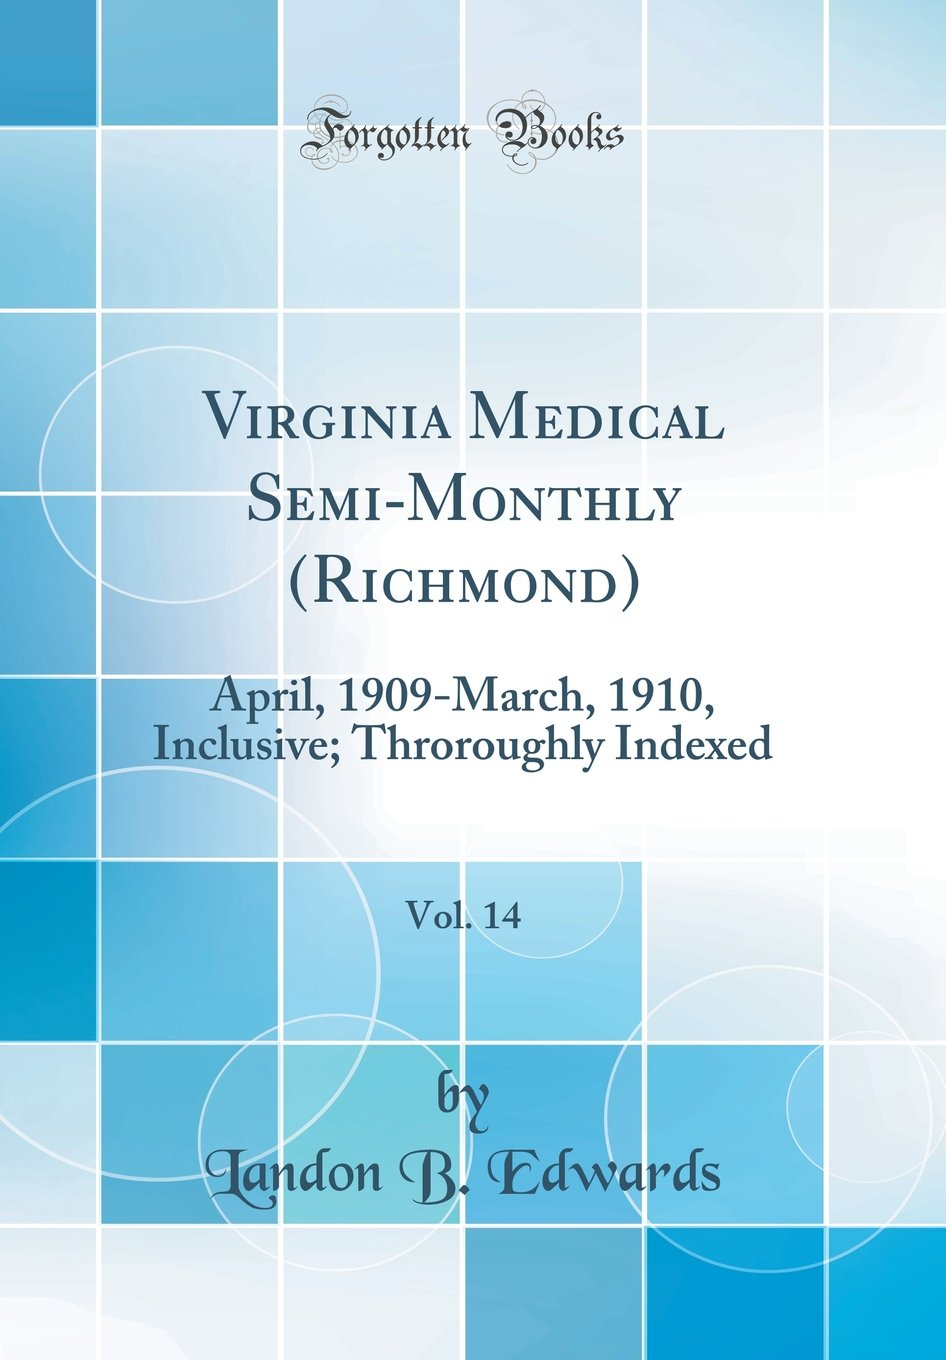 Virginia Medical Semi-Monthly (Richmond), Vol. 14: April, 1909-March, 1910, Inclusive; Throroughly Indexed (Classic Reprint) ebook